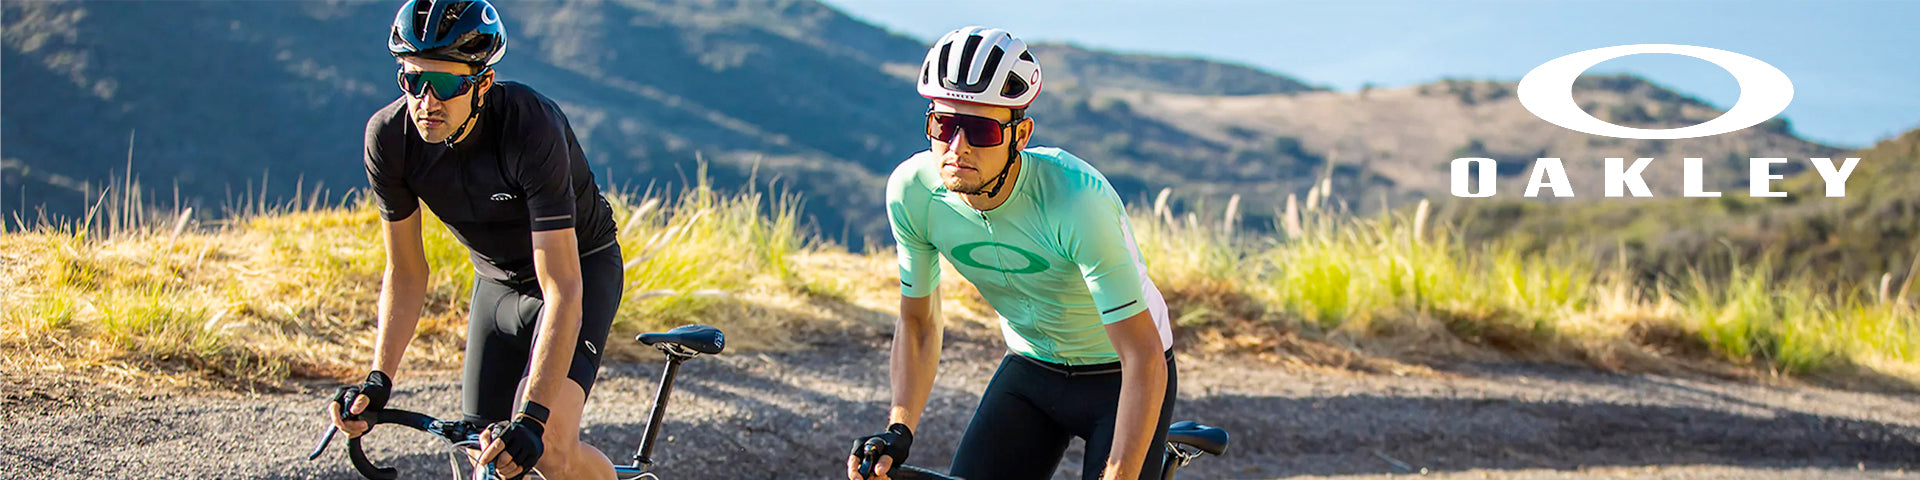 SVP Sports - Oakley Collection Page